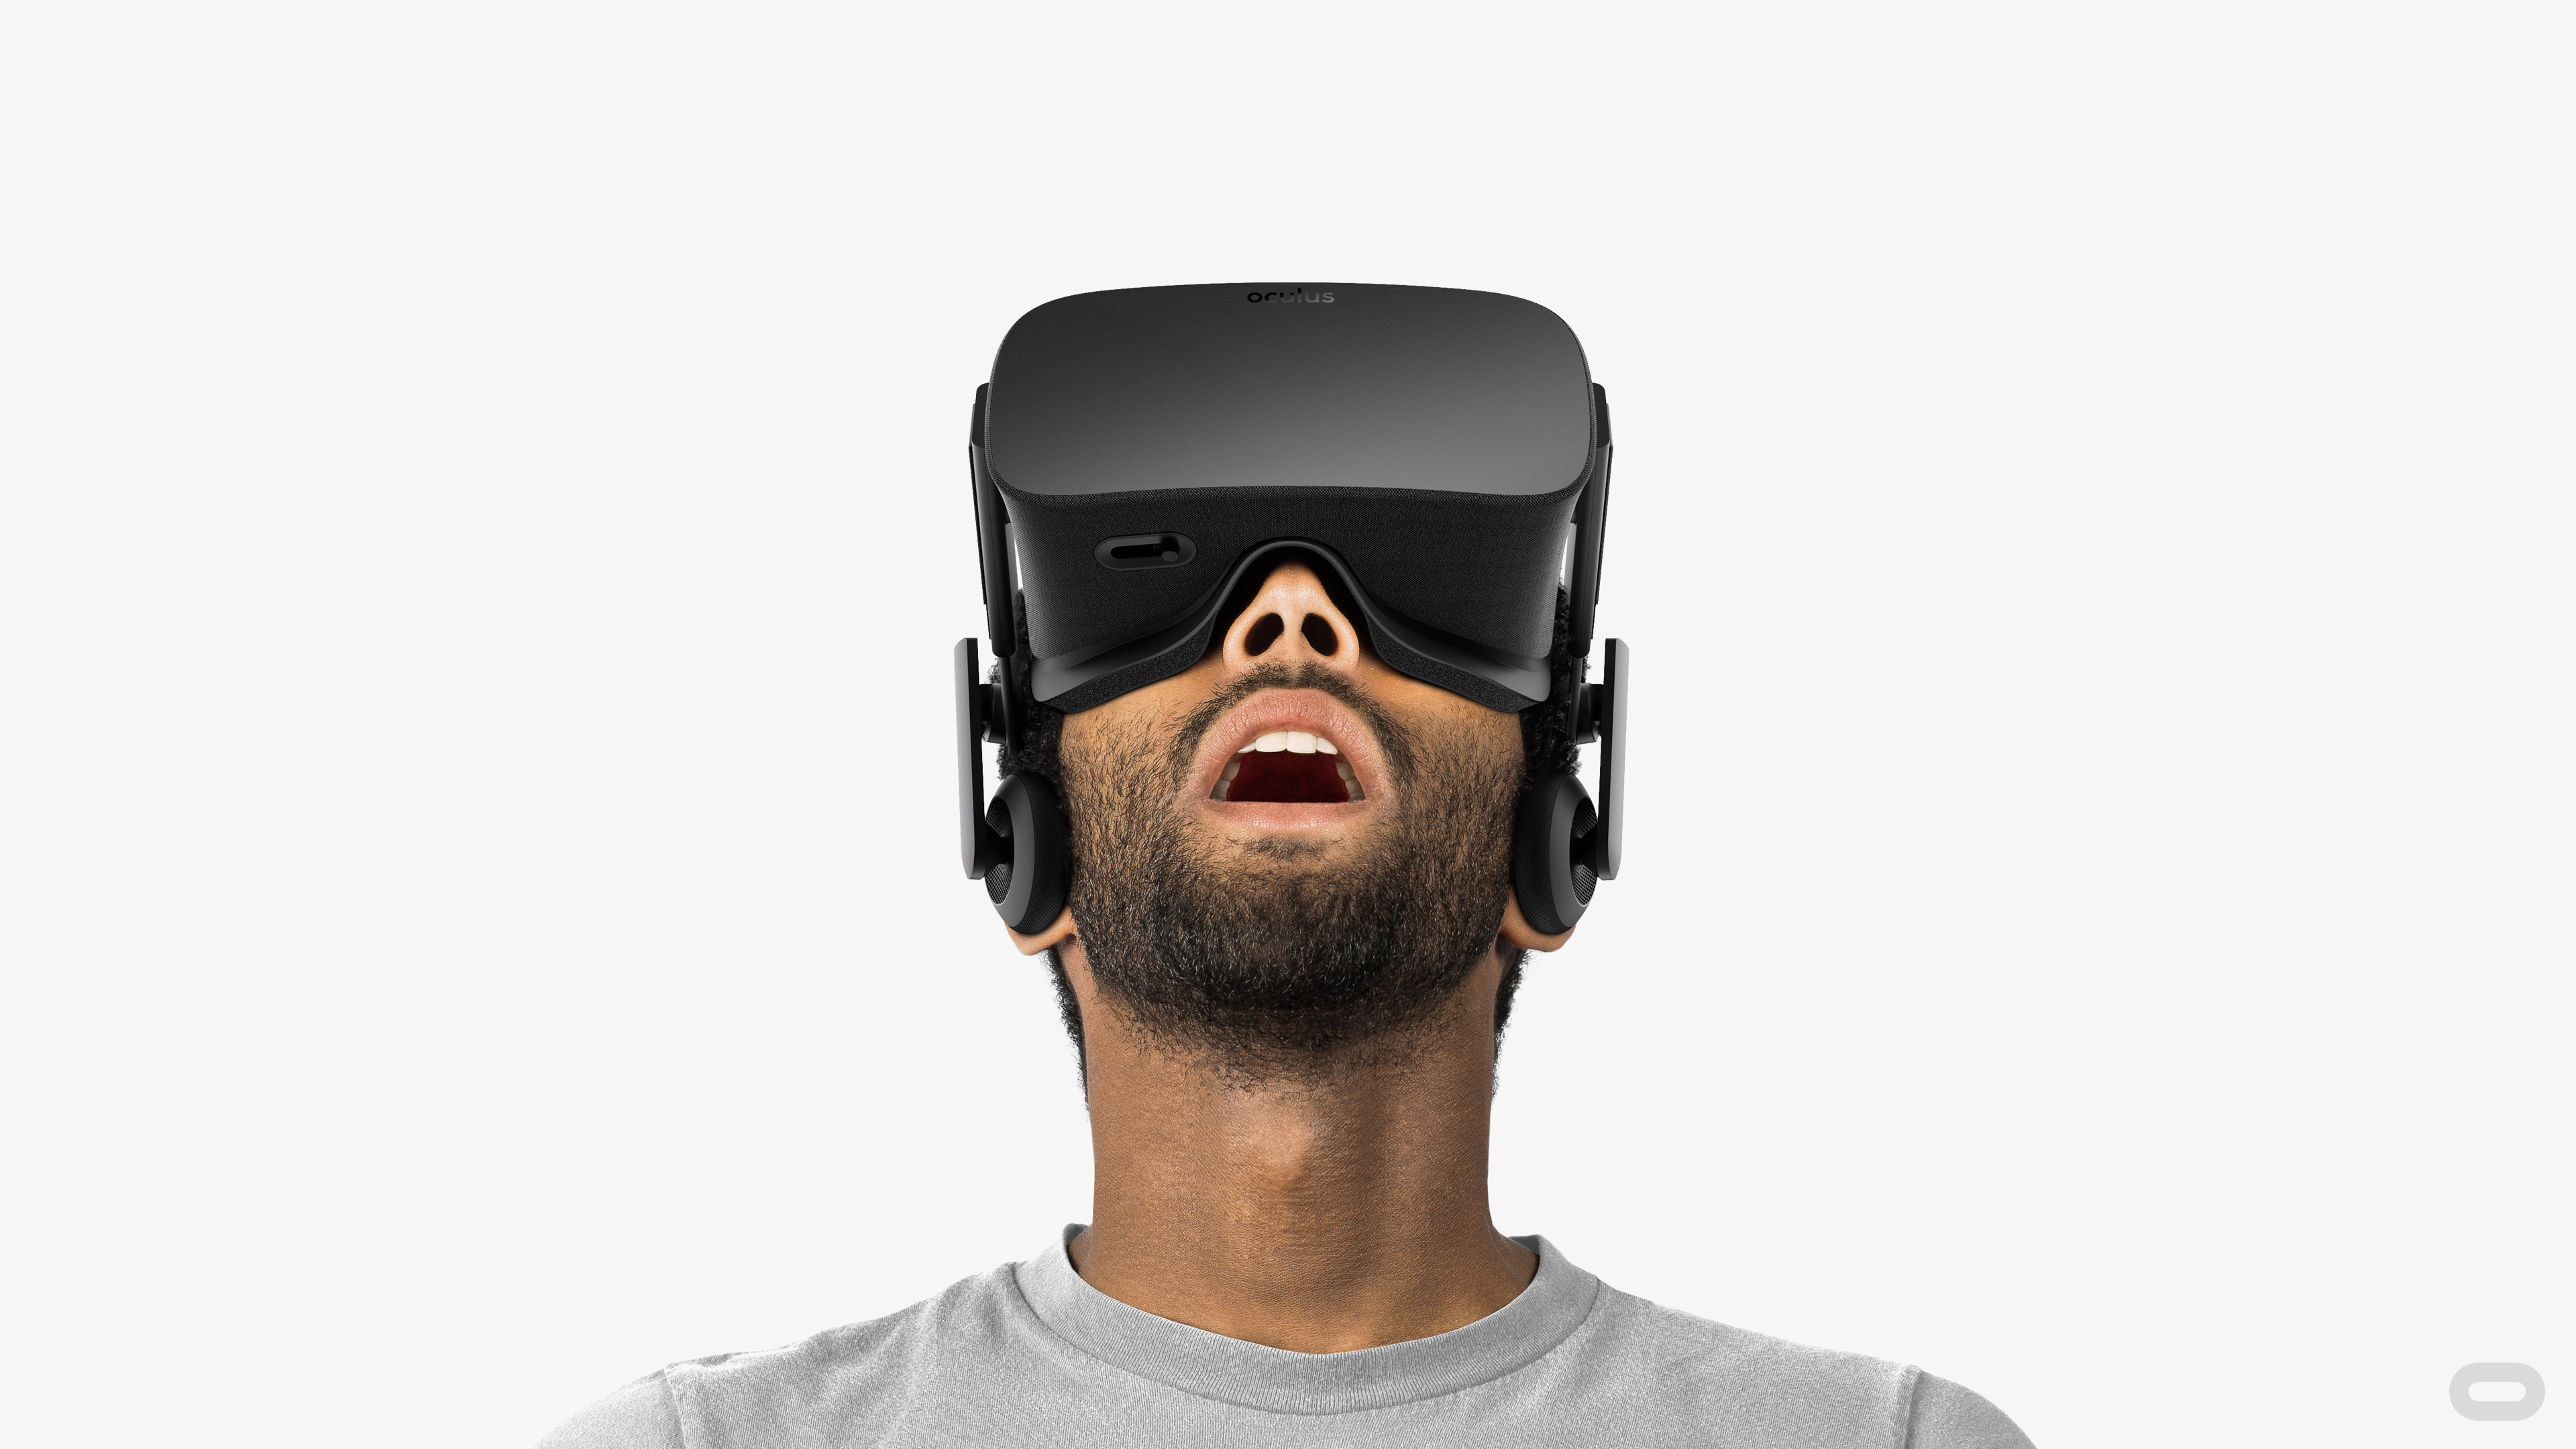 Facebook's Oculus Rift Consumer Edition launches March 24 for $600.